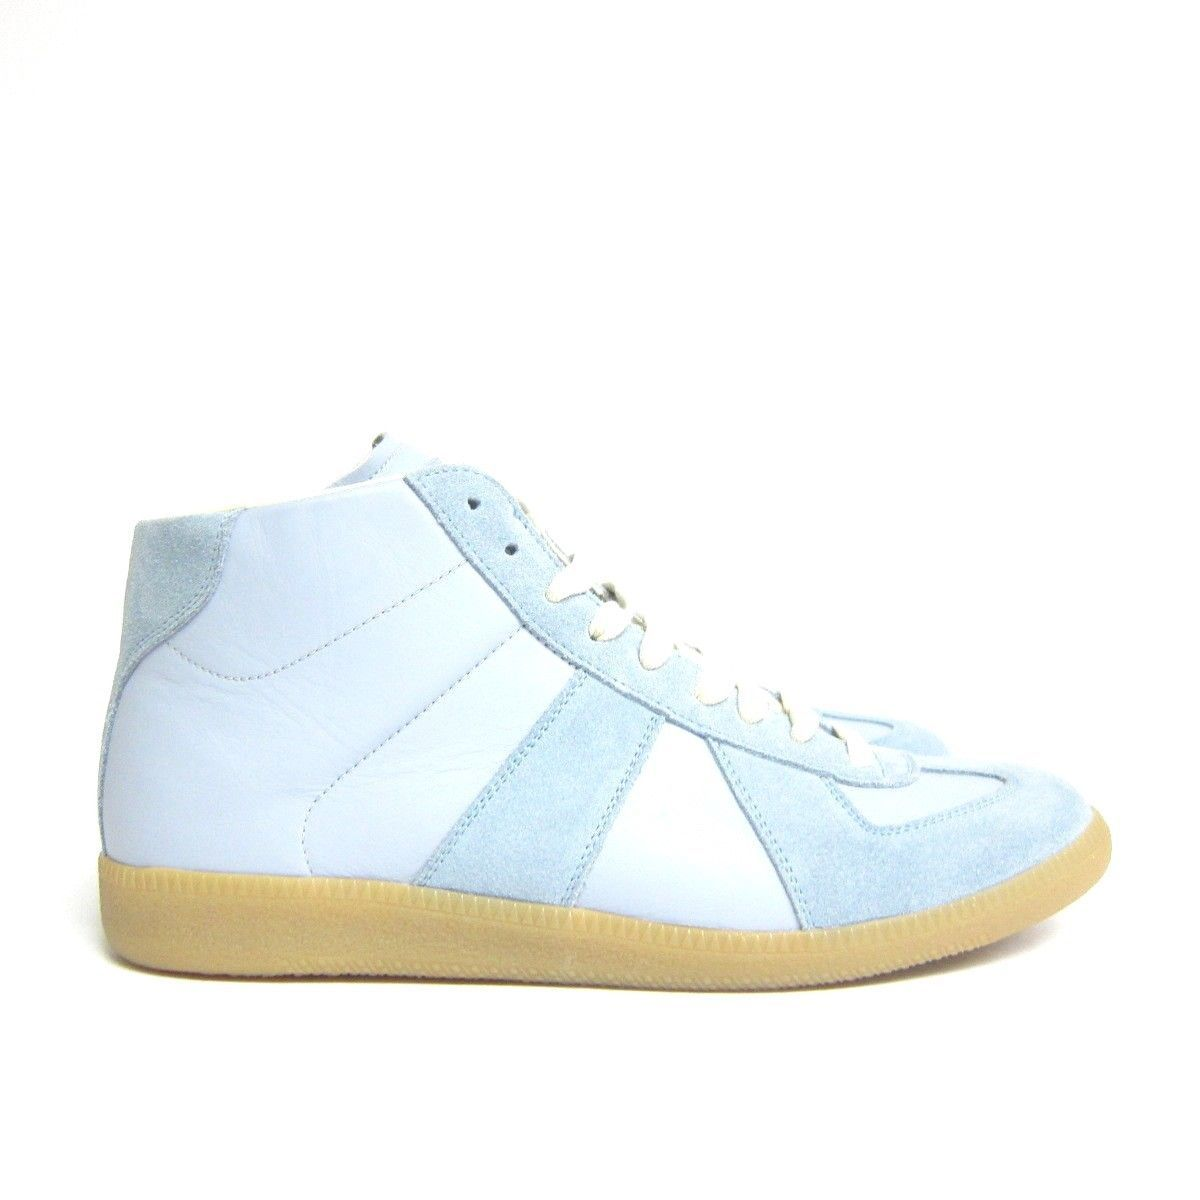 P-516261 New Martin Maison Margiela Blue Suede High Top Sneakers US 8 Marked 41